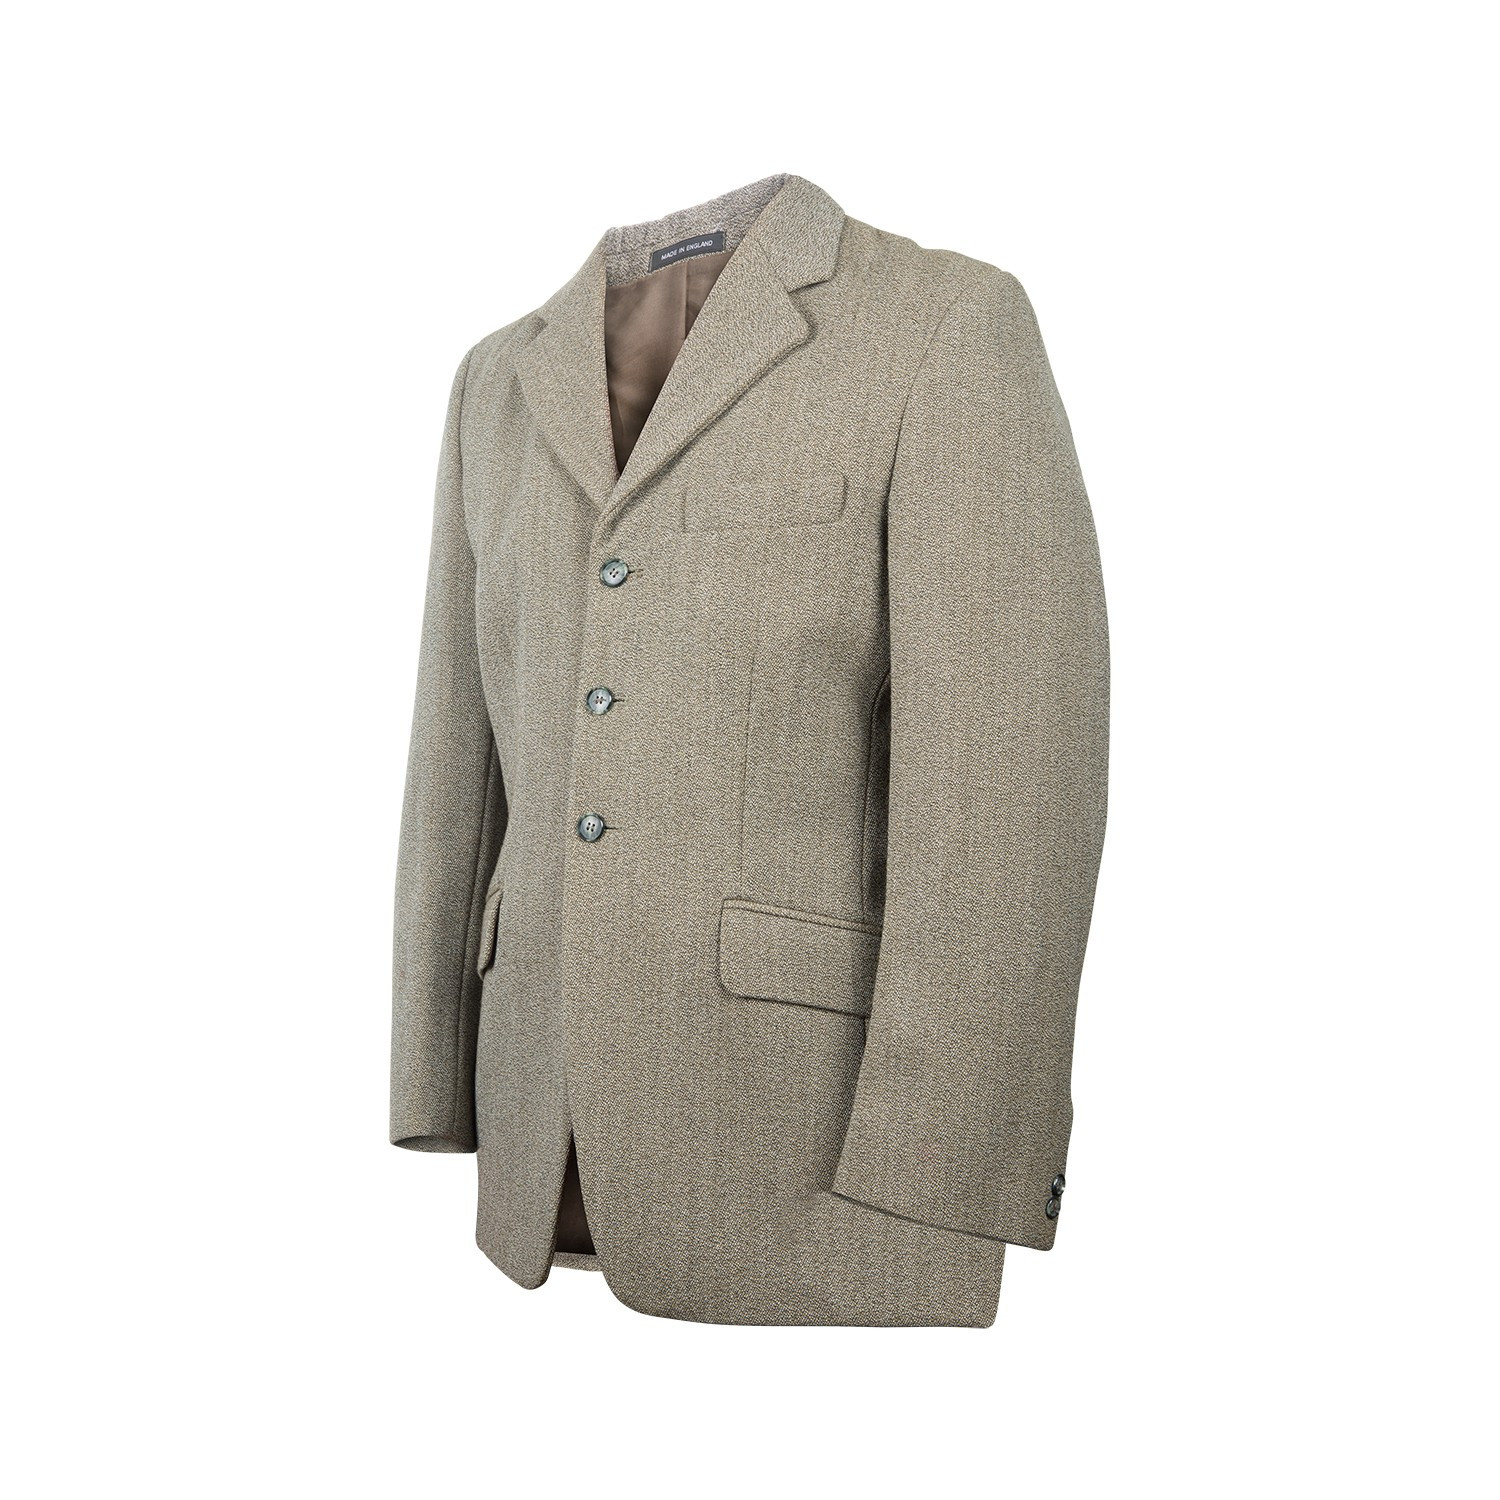 Veste d'équitation en tweed Keepers